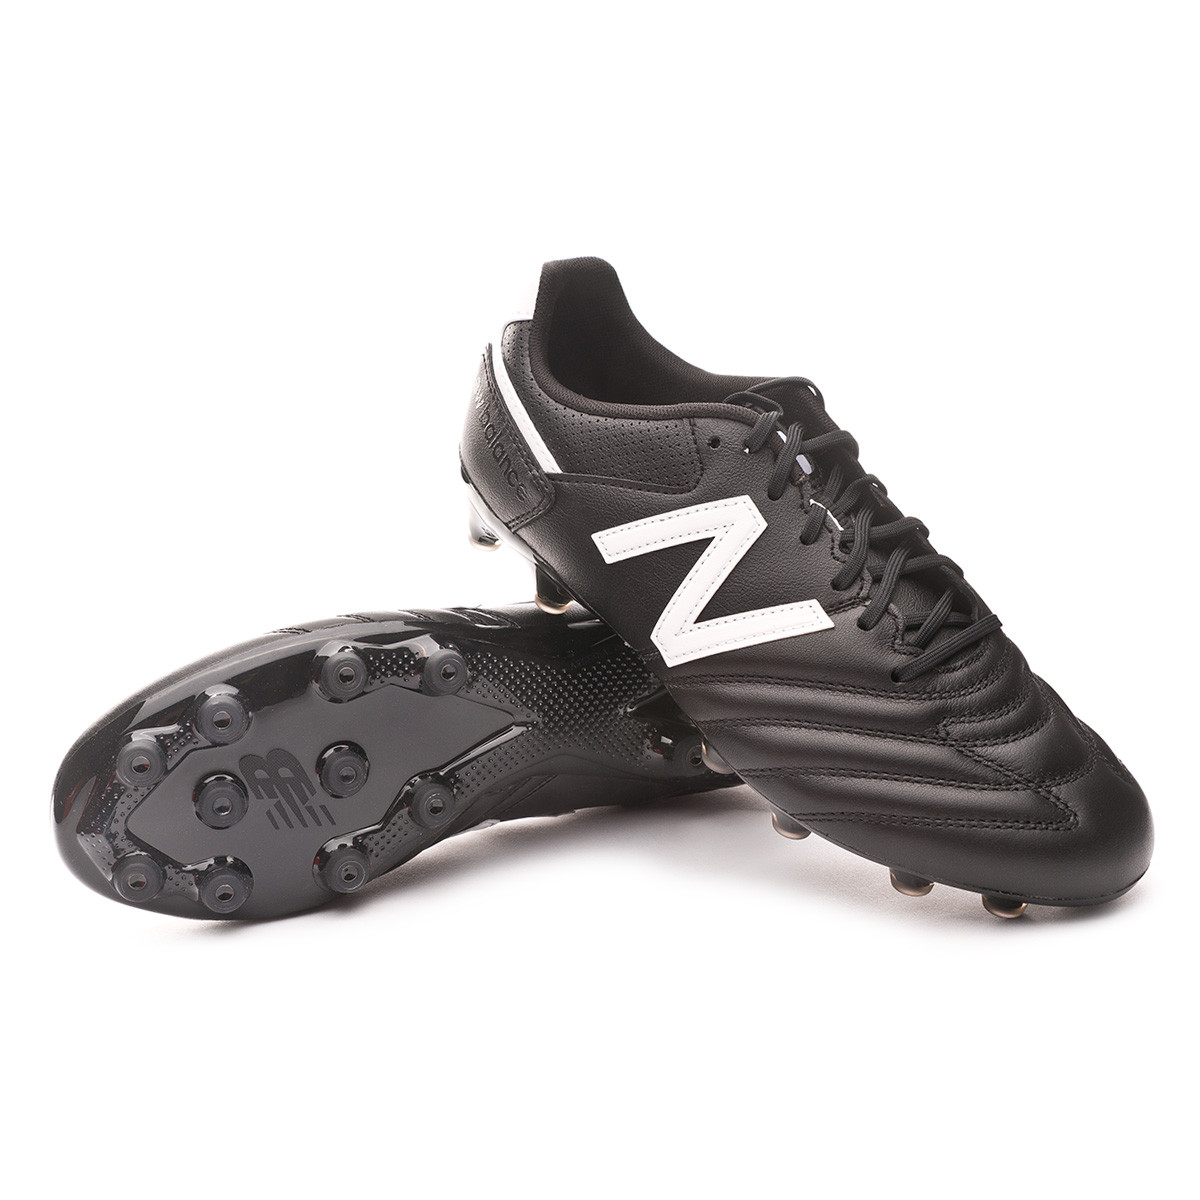 new balance black and white football boots